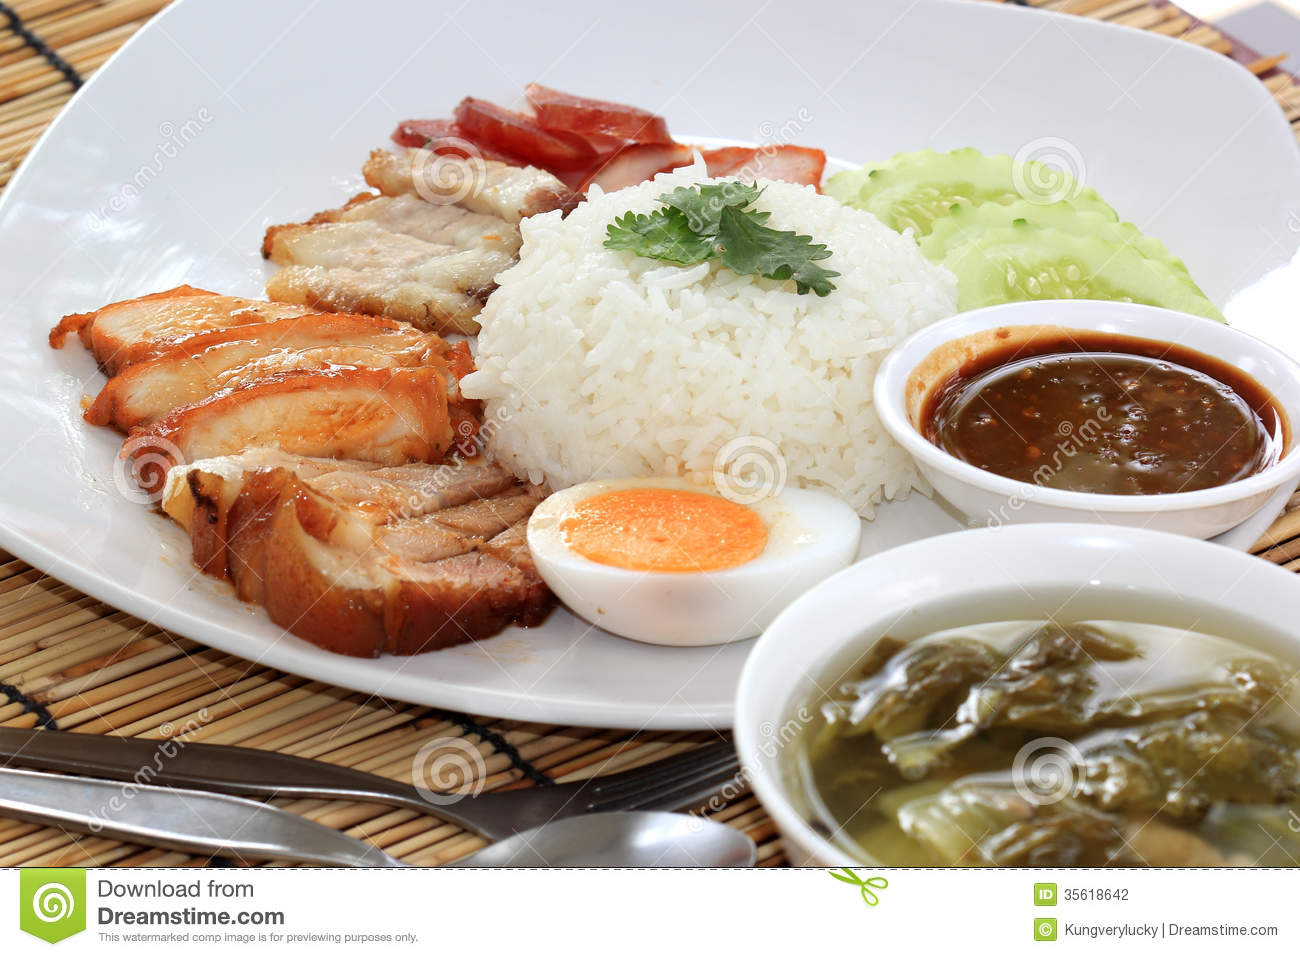 meal pork fried rice meal pork fried rice steamed pork with rice meal ...